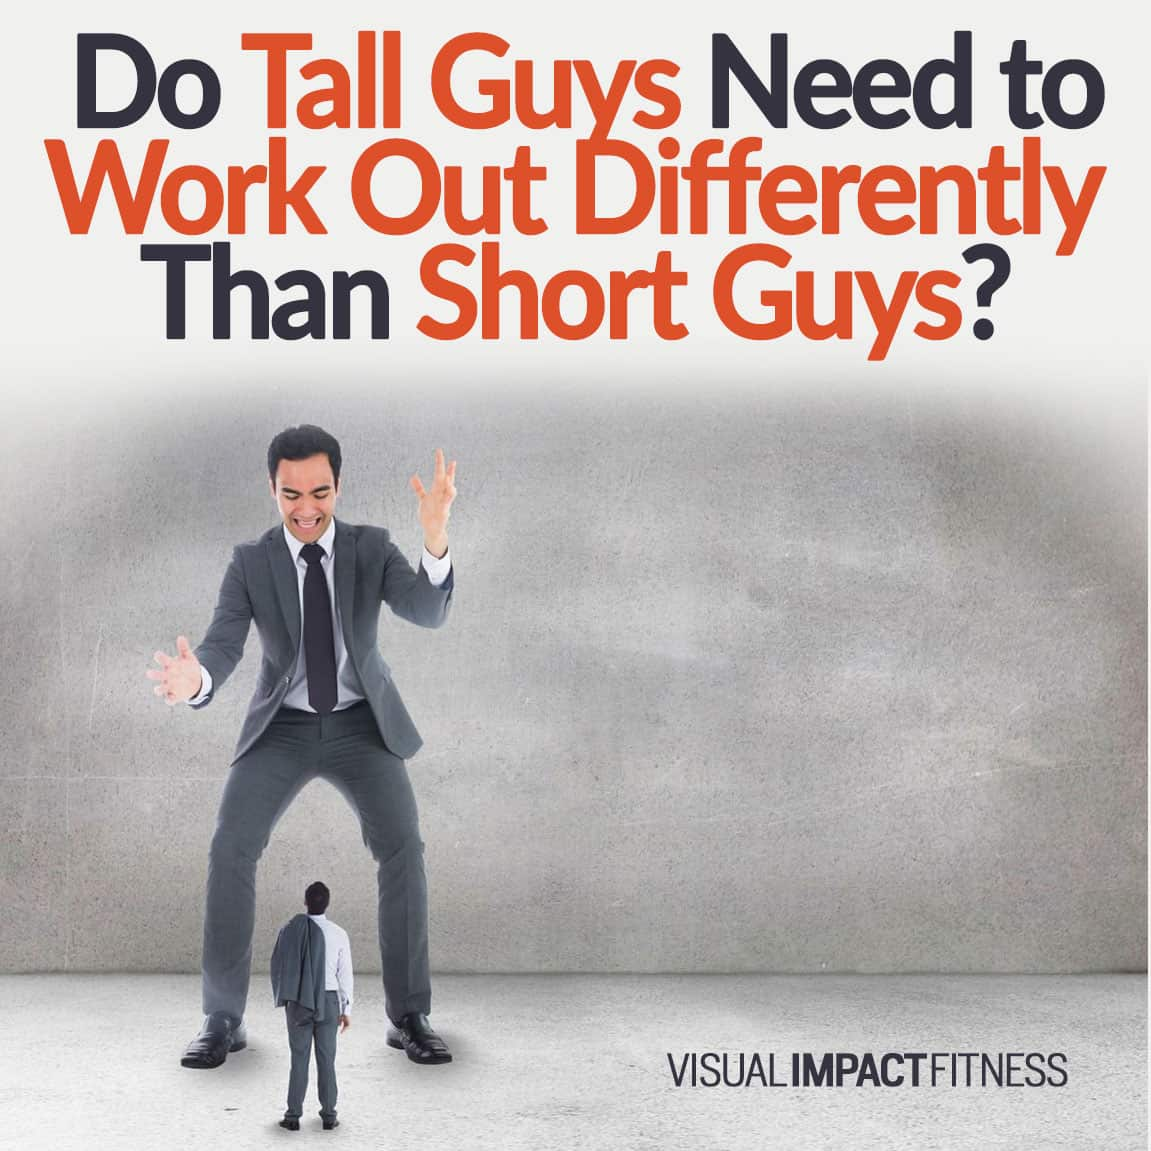 Do Tall Guys Need to Work Out Differently Than Short Guys?